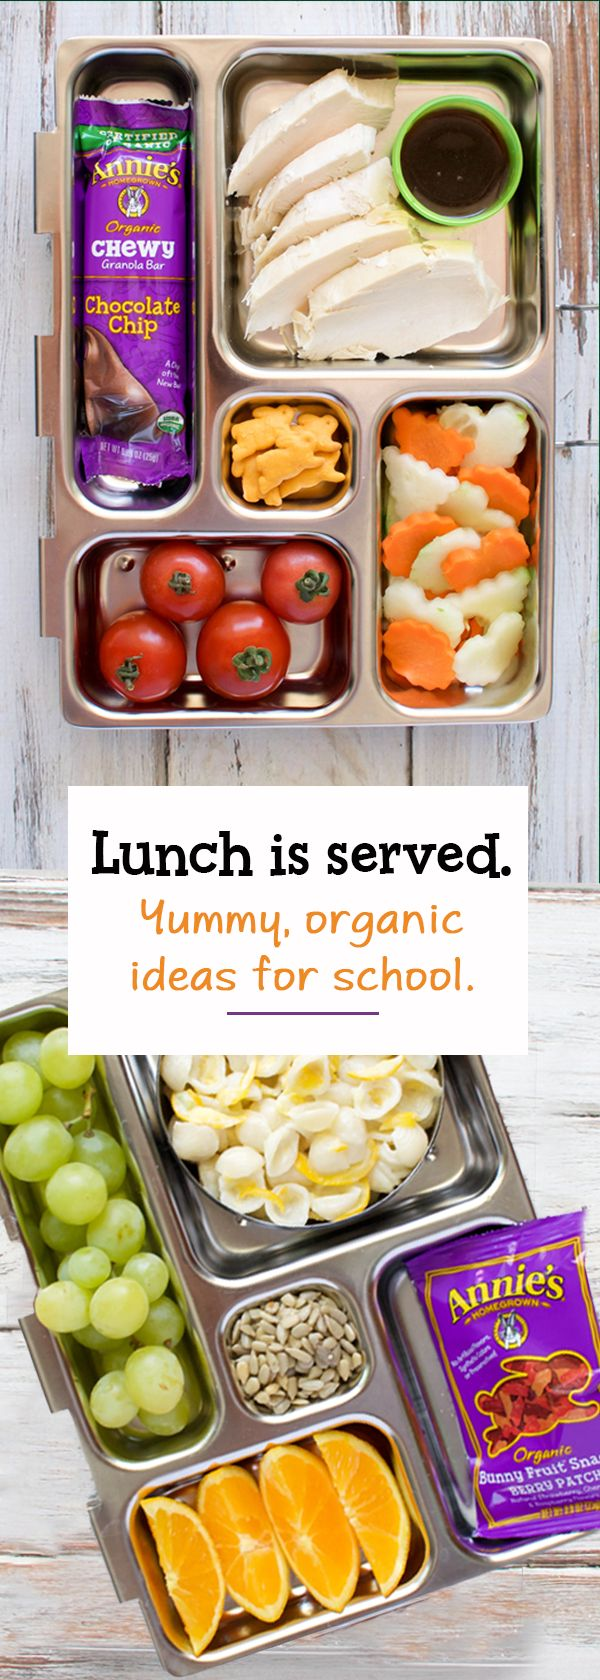 Best 25 Vegan School Lunch Ideas For Kids Ideas On